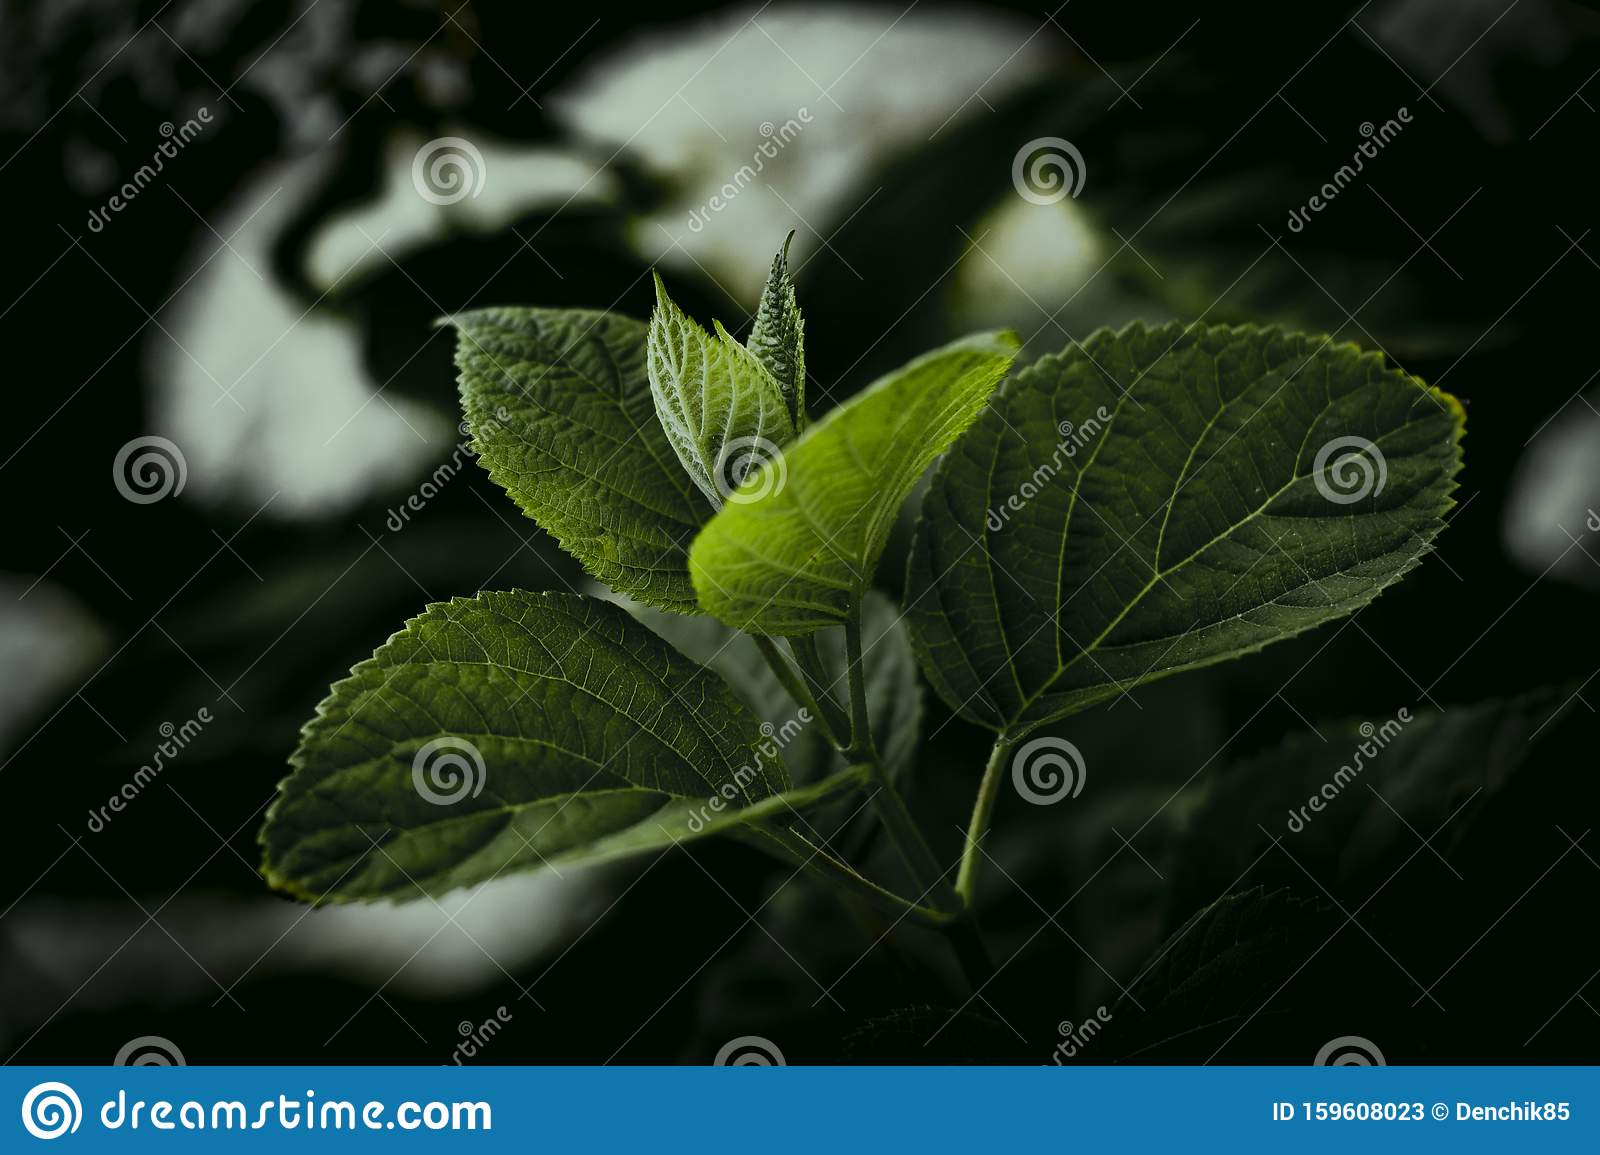 Dark Leafy Background Wallpaper Plant Green Leaves Stock Image Image Of Fresh Foliage 159608023